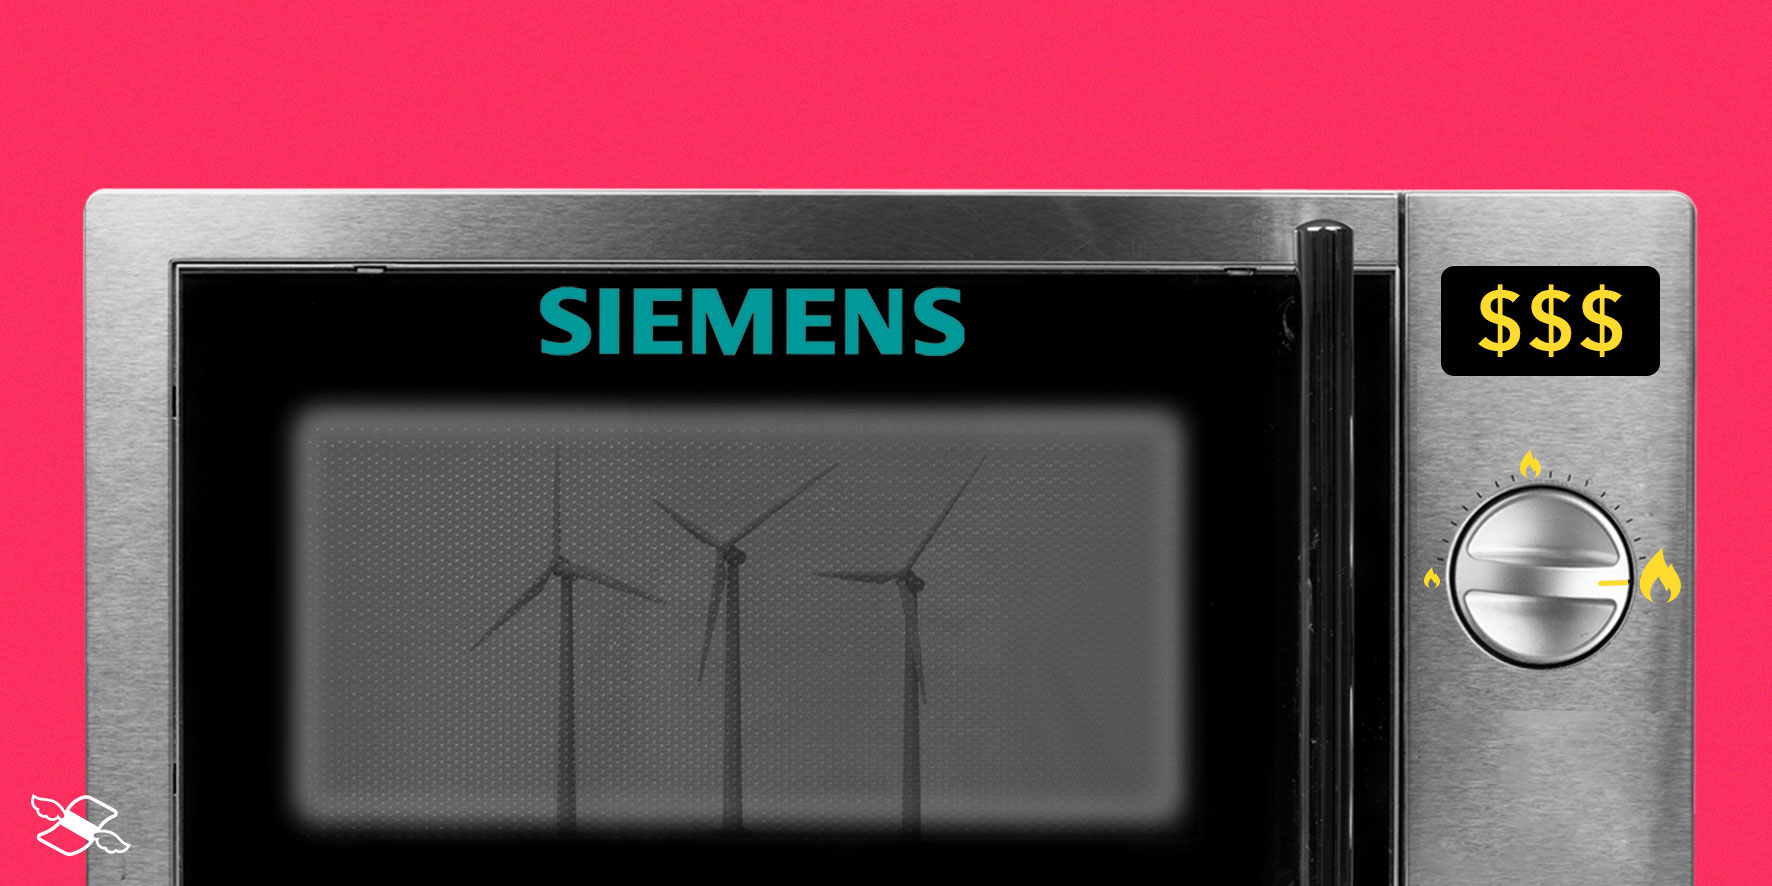 Siemens has a strong quarter